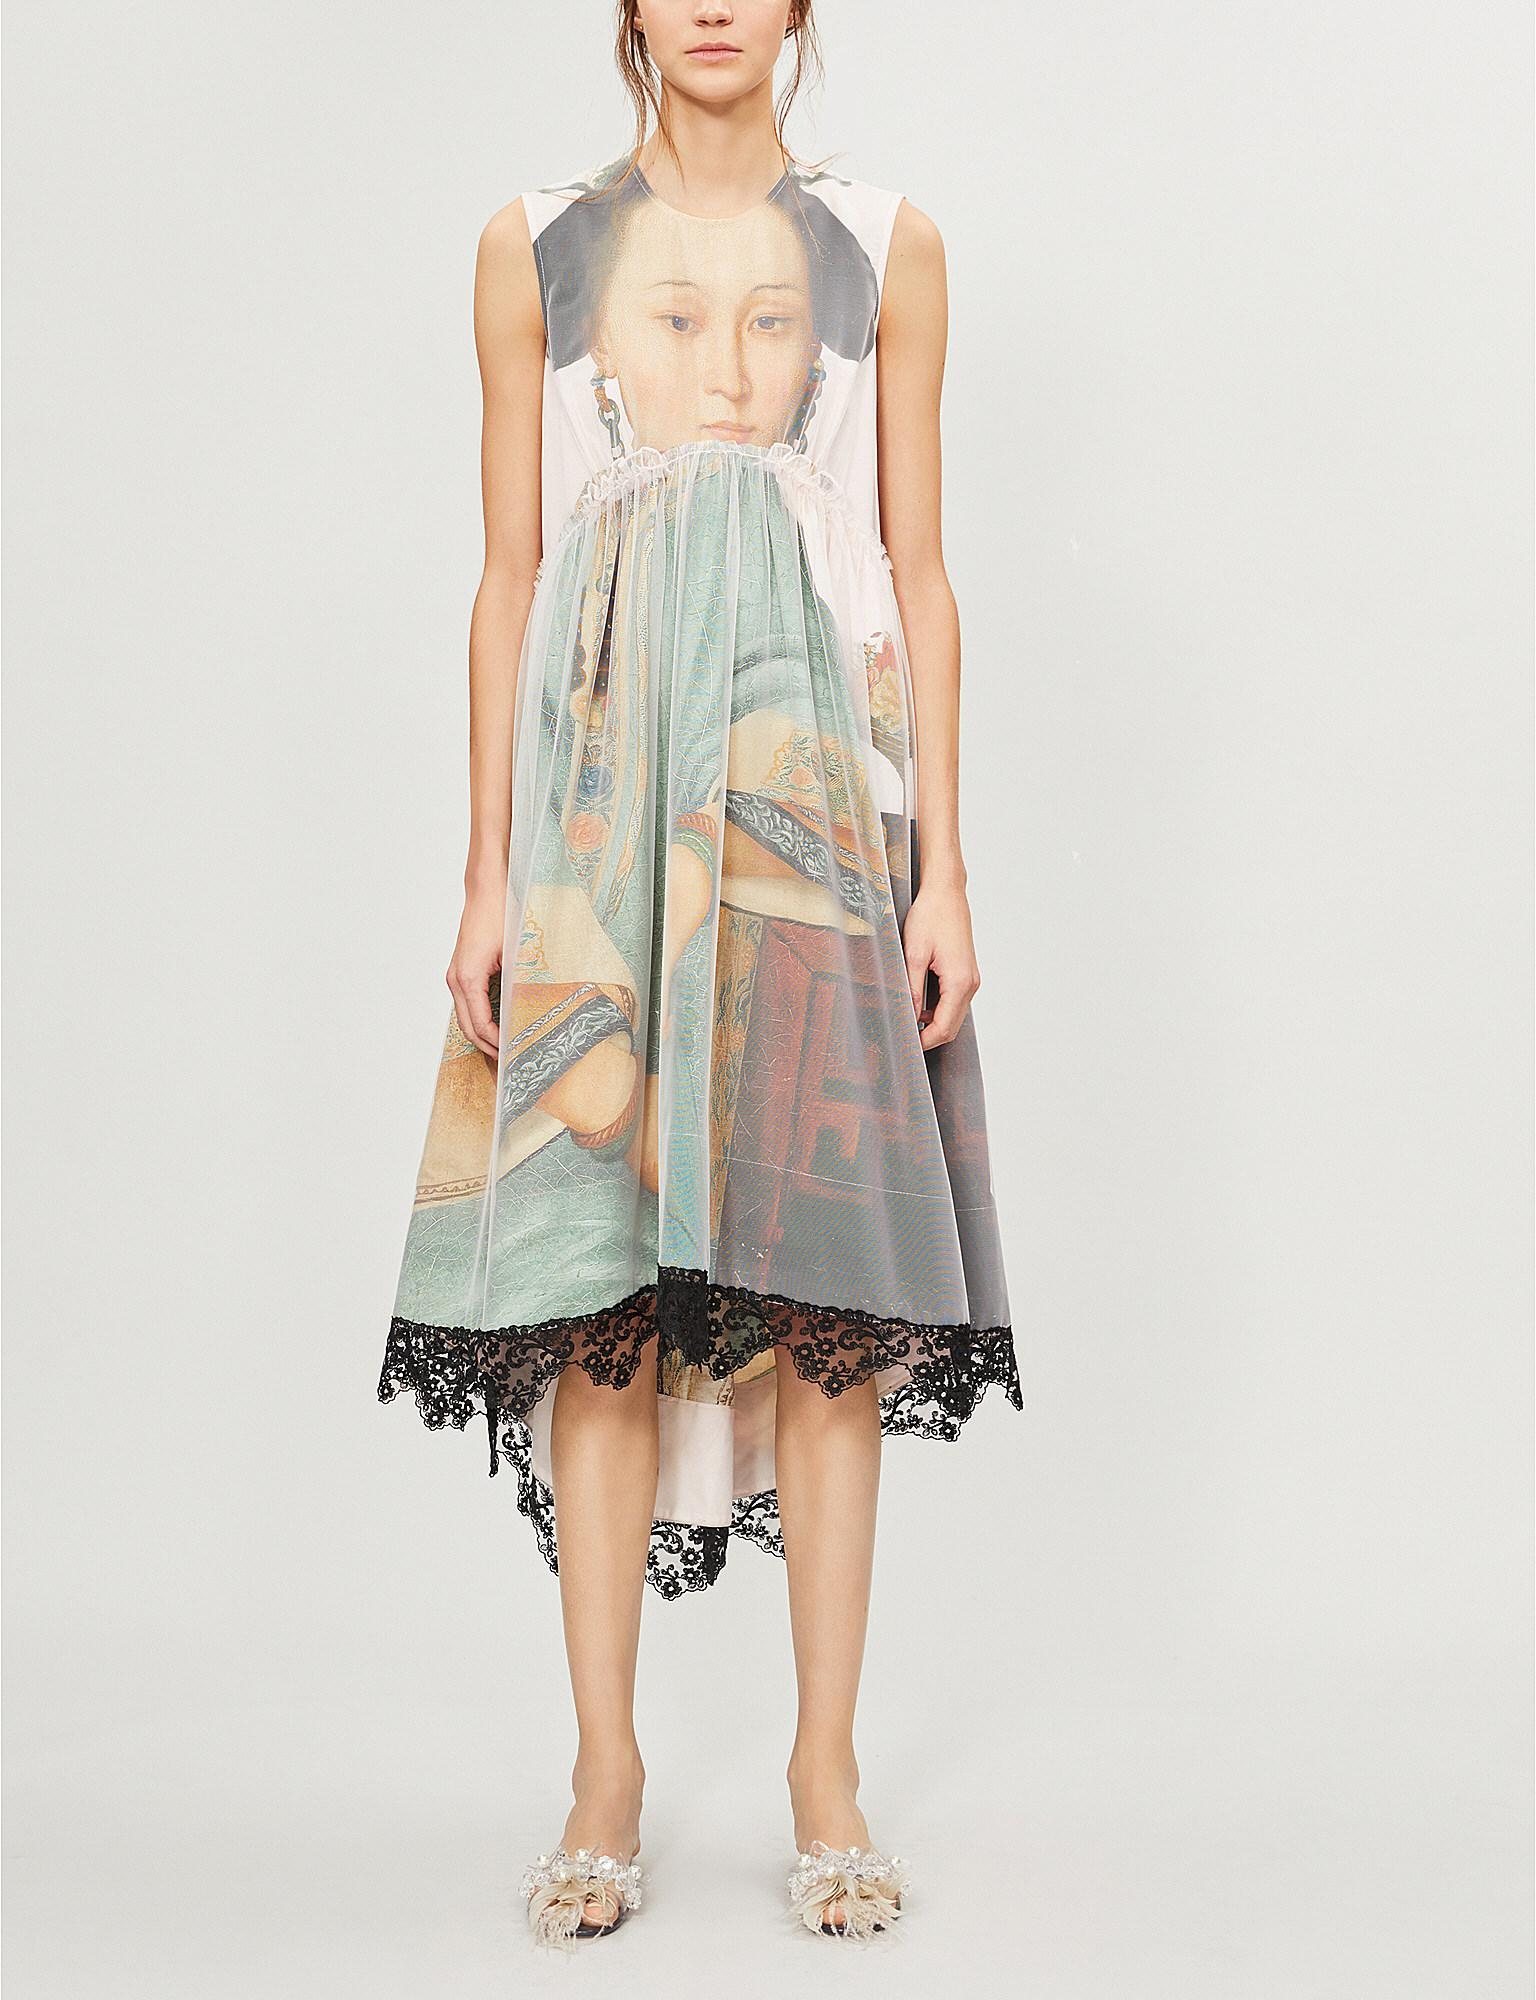 27dc3c3ccad1 Lyst - Simone Rocha Graphic-print Cotton And Tulle Dress in Pink